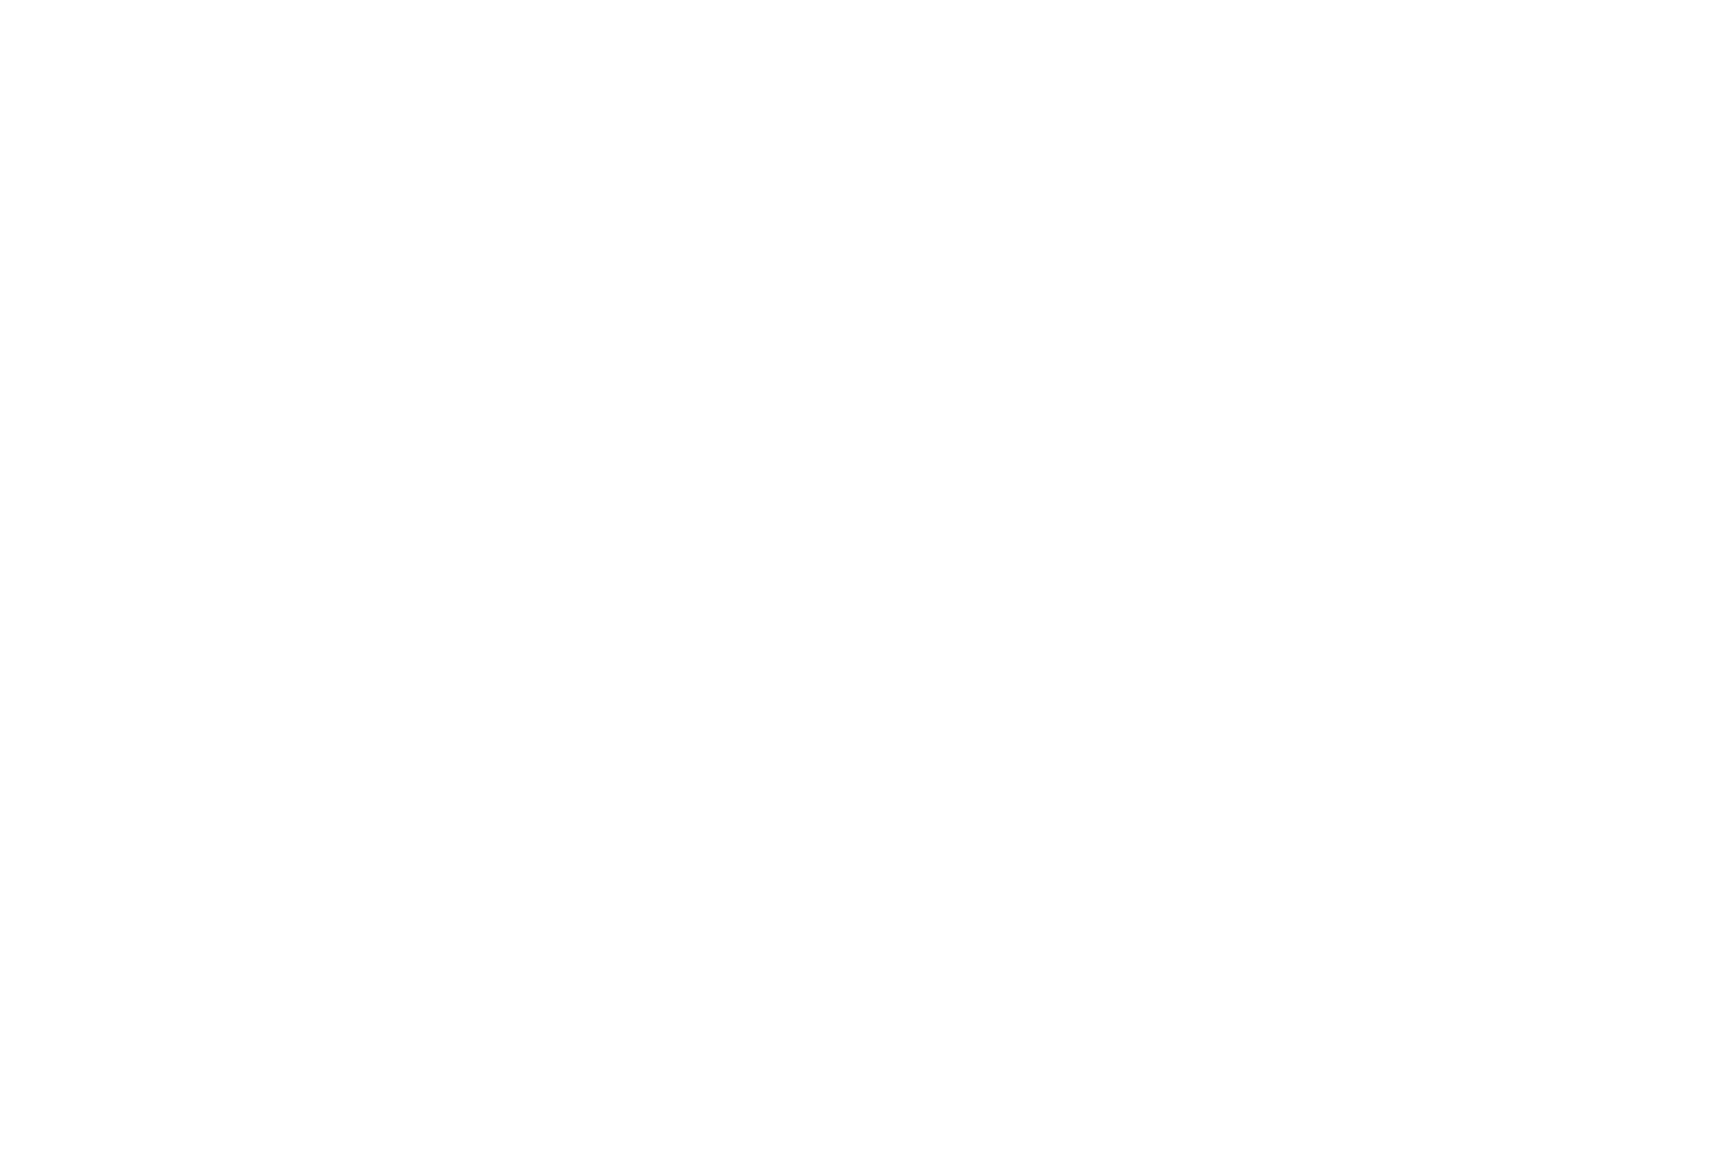 BEST CONCEPT - Hang on to Your Shorts Film Festival - 2019.png